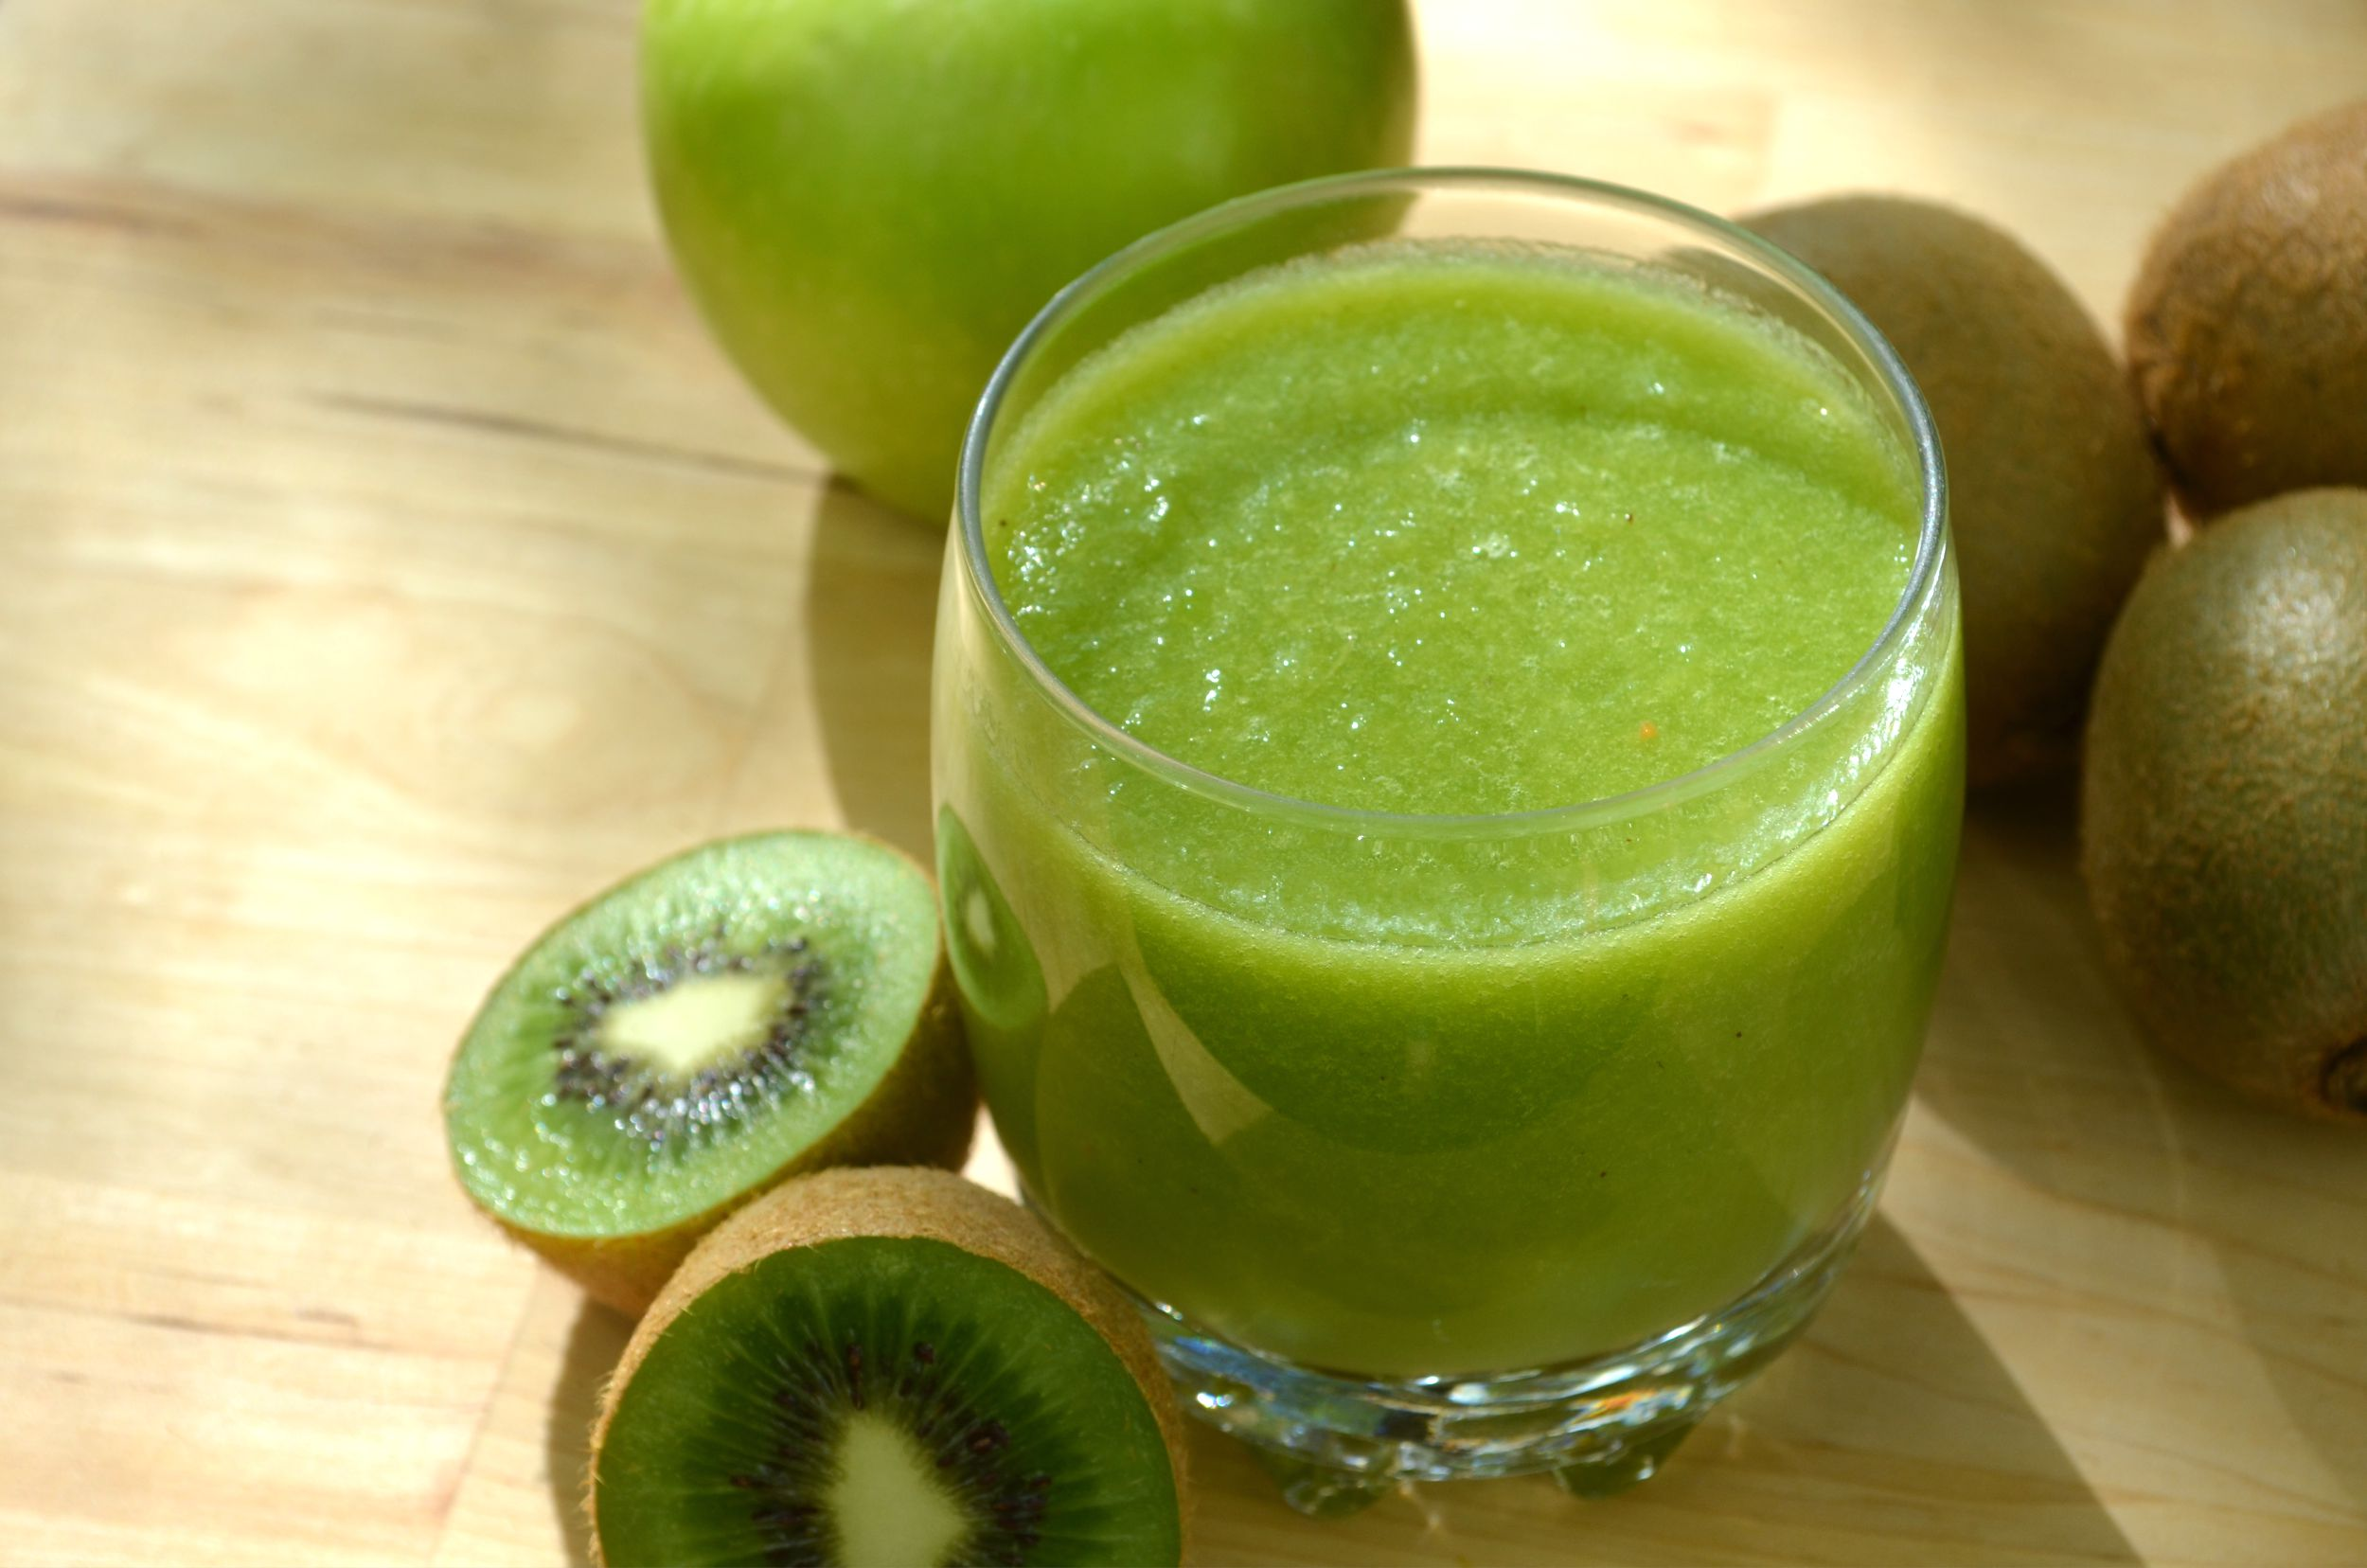 Jul 21, · Take a kiwi, peel it and extract the juice. 2.) Strain the juice to make sure there are no pulpy parts in it (unless you like pulp, of course). 3.) Pour the juice into a popsicle mold after putting a popsicle stick in the mold%(16).